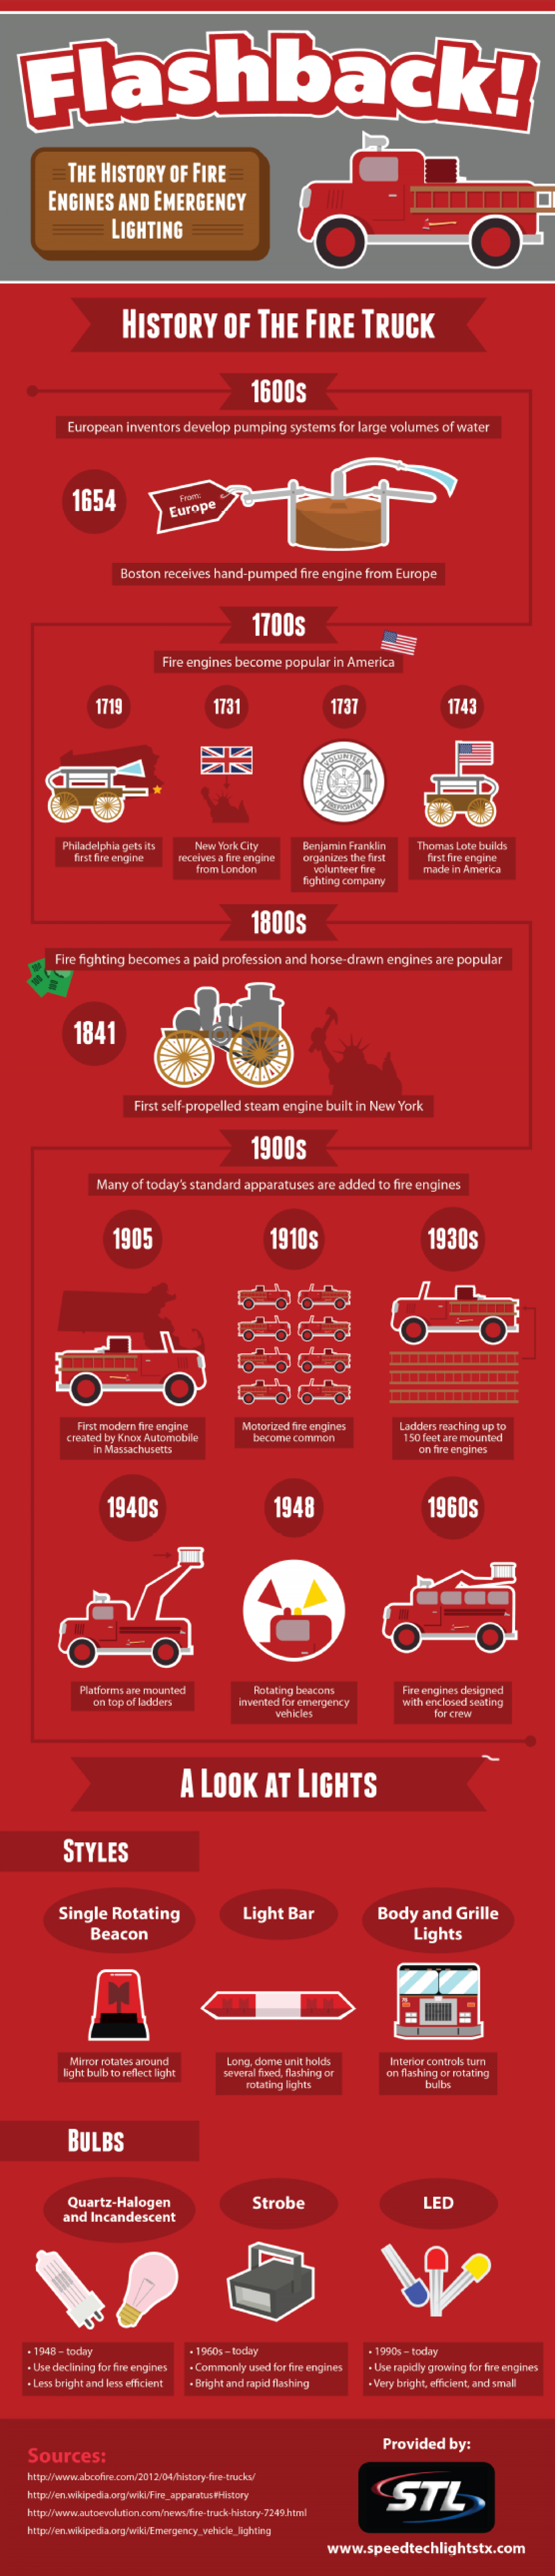 the history of fire engines and emergency lighting infographic. Black Bedroom Furniture Sets. Home Design Ideas